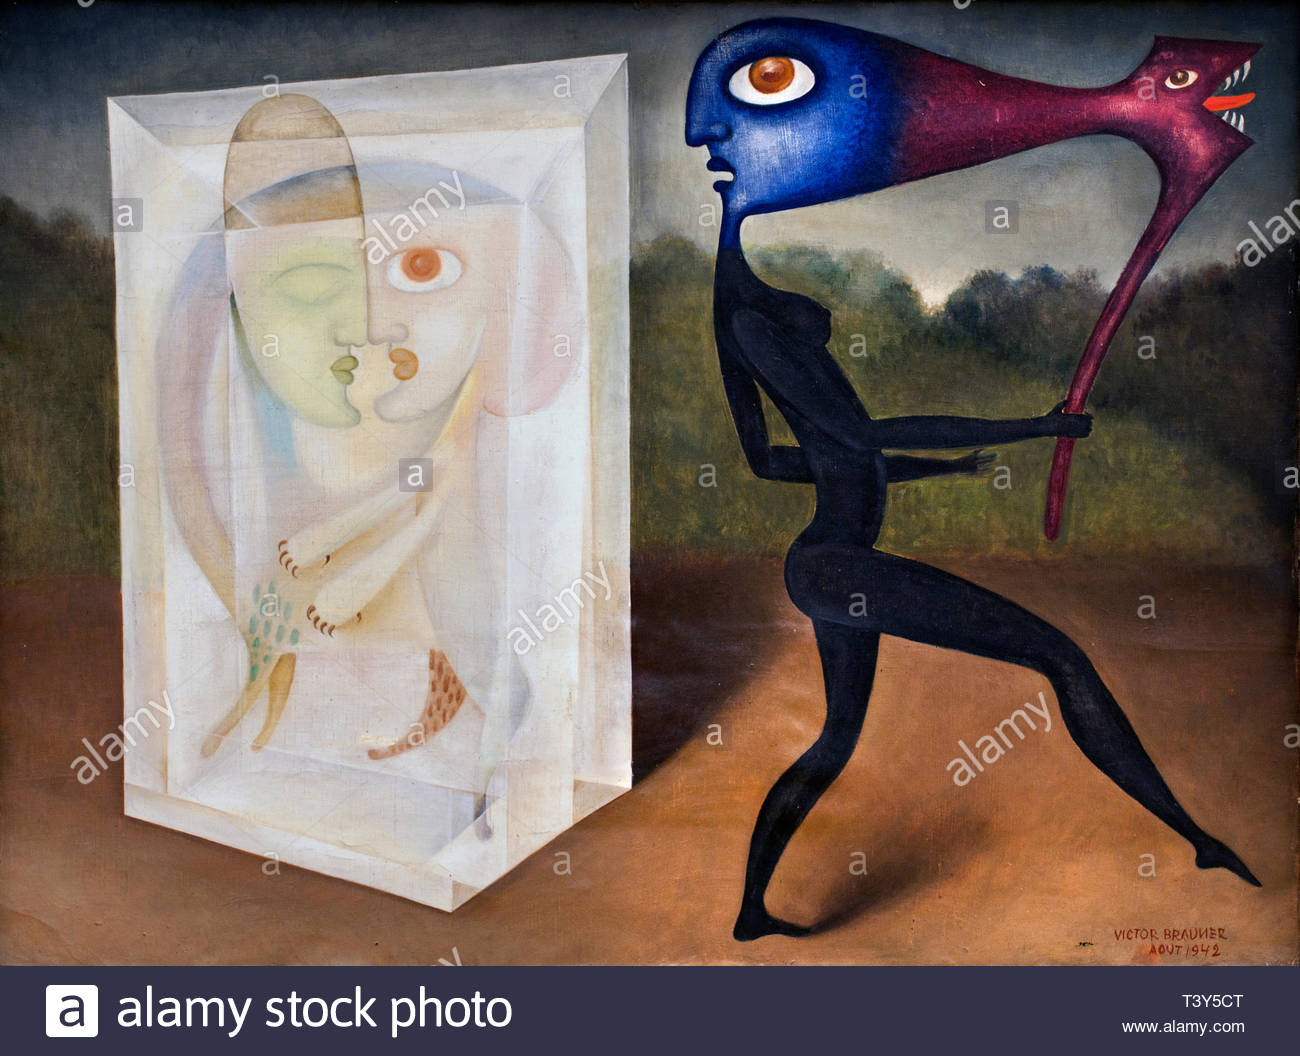 Pittori Francesi Surrealisti Art Surrealist Immagini Art Surrealist Fotos Stock Alamy